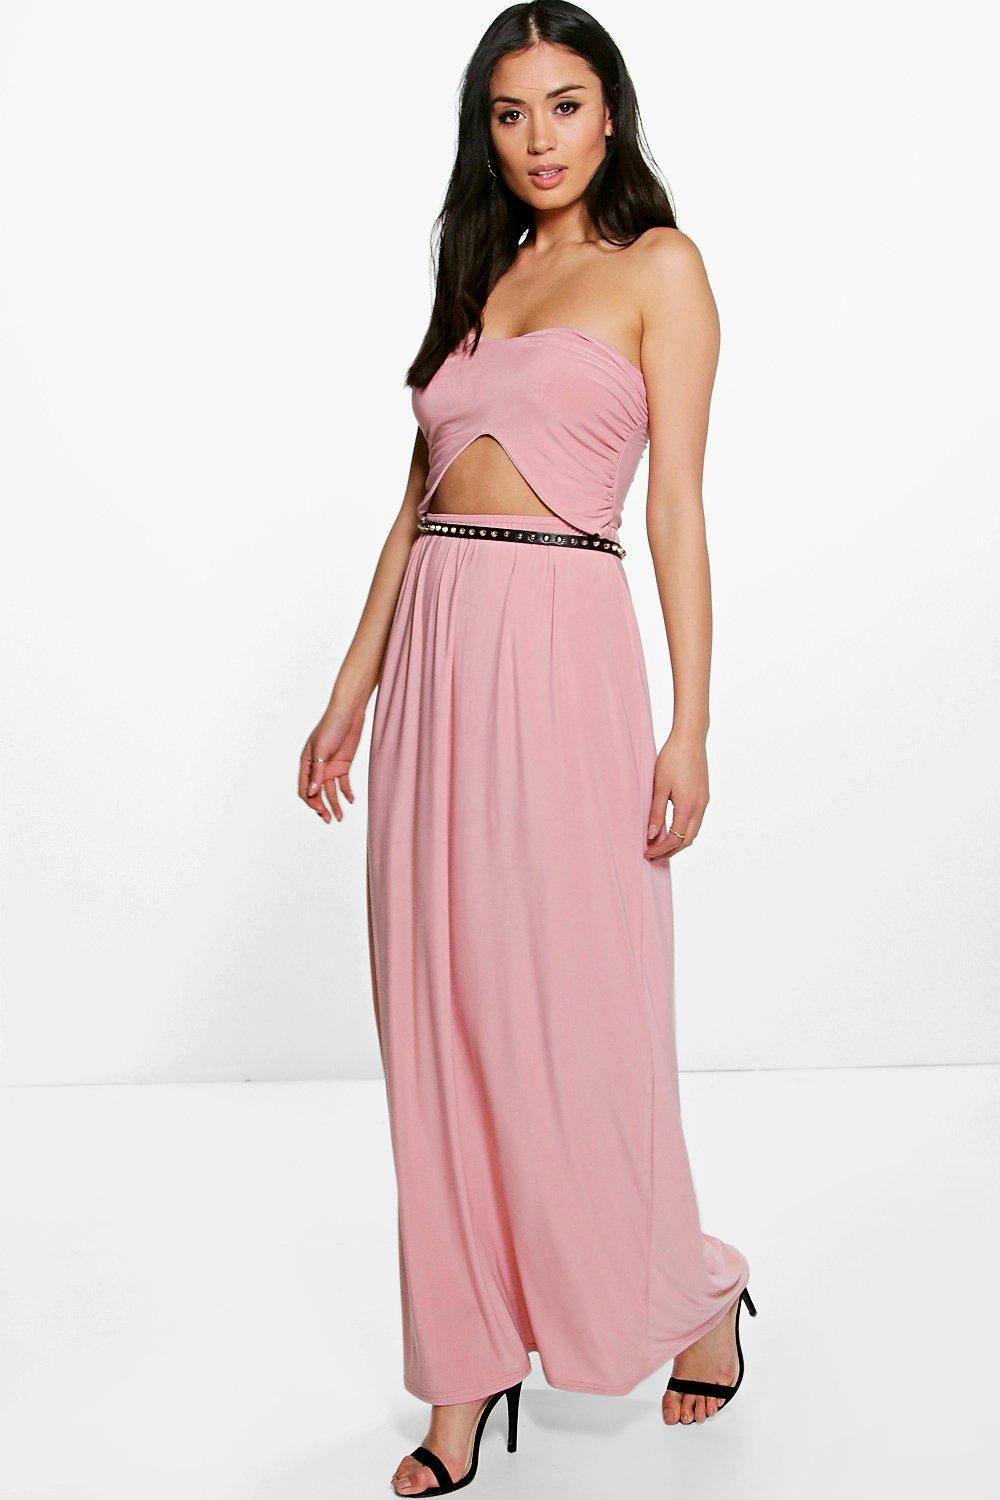 Front Cut Out Bandeau Maxi Dress Black - neckline: strapless (straight/sweetheart); pattern: plain; sleeve style: sleeveless; style: maxi dress; waist detail: belted waist/tie at waist/drawstring; predominant colour: pink; occasions: evening; length: floor length; fit: body skimming; fibres: polyester/polyamide - stretch; sleeve length: sleeveless; pattern type: fabric; texture group: jersey - stretchy/drapey; season: s/s 2016; wardrobe: event